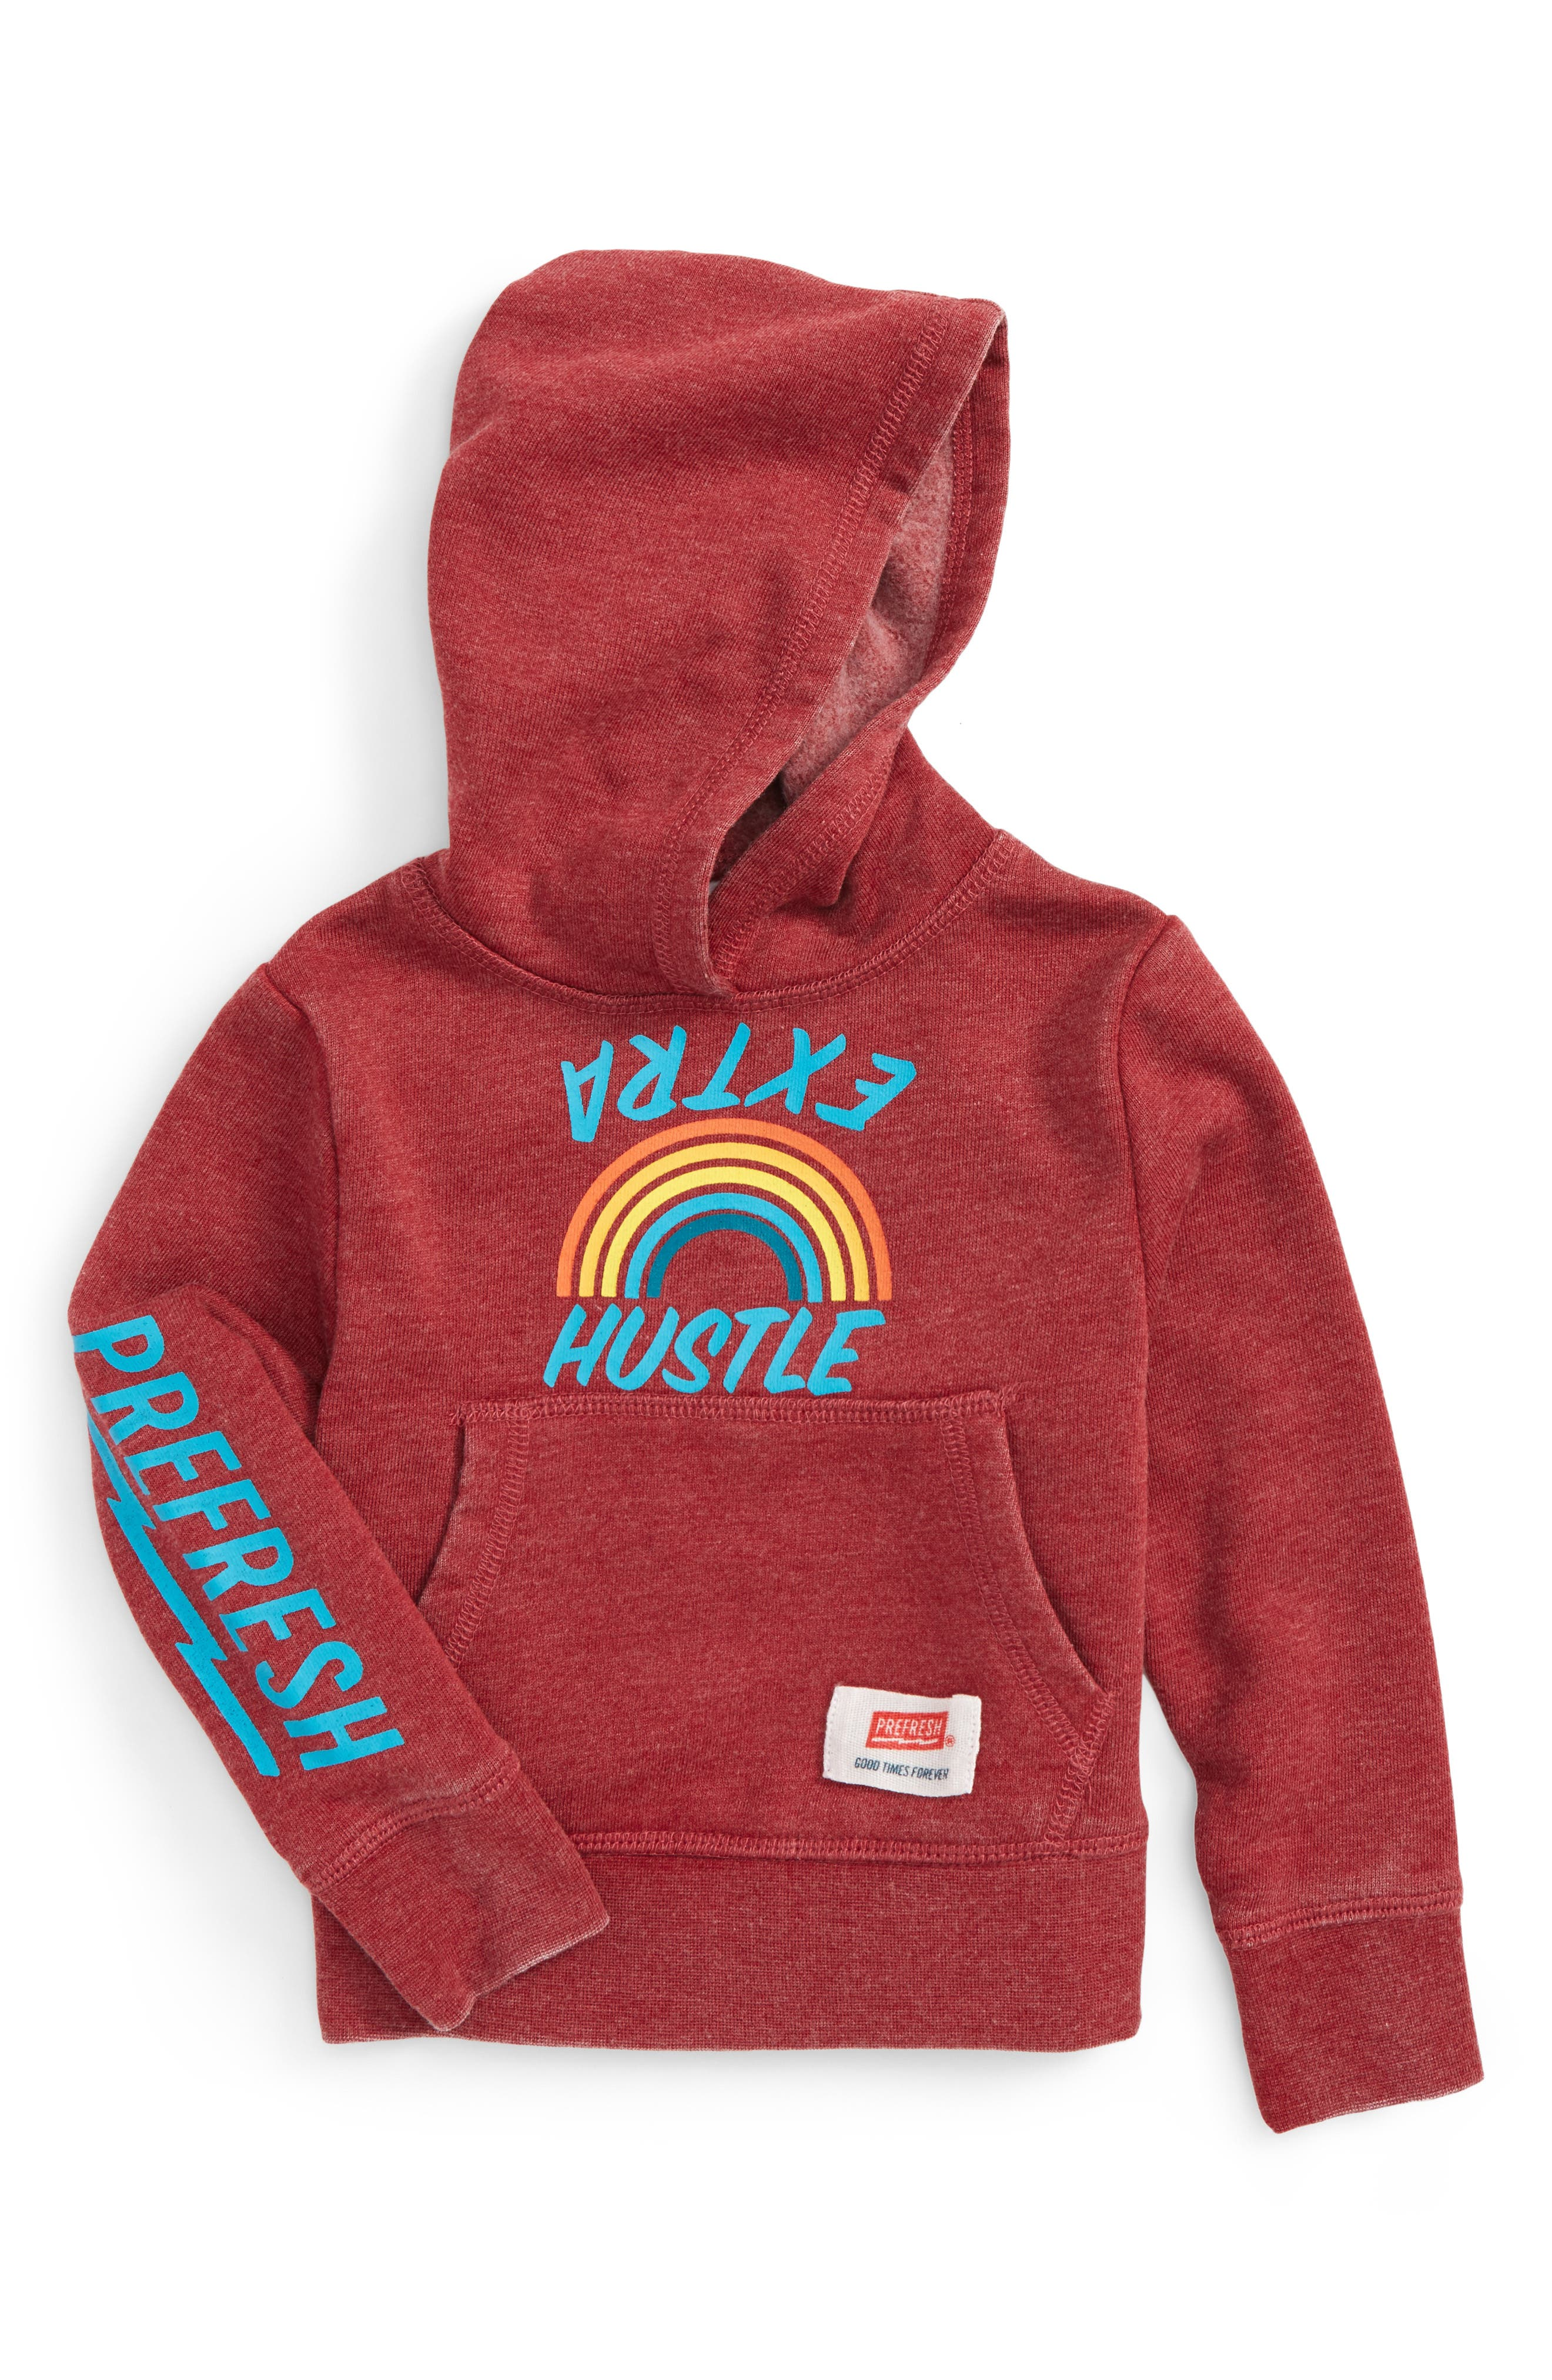 Extra Hustle Graphic Sweatshirt,                         Main,                         color, 608